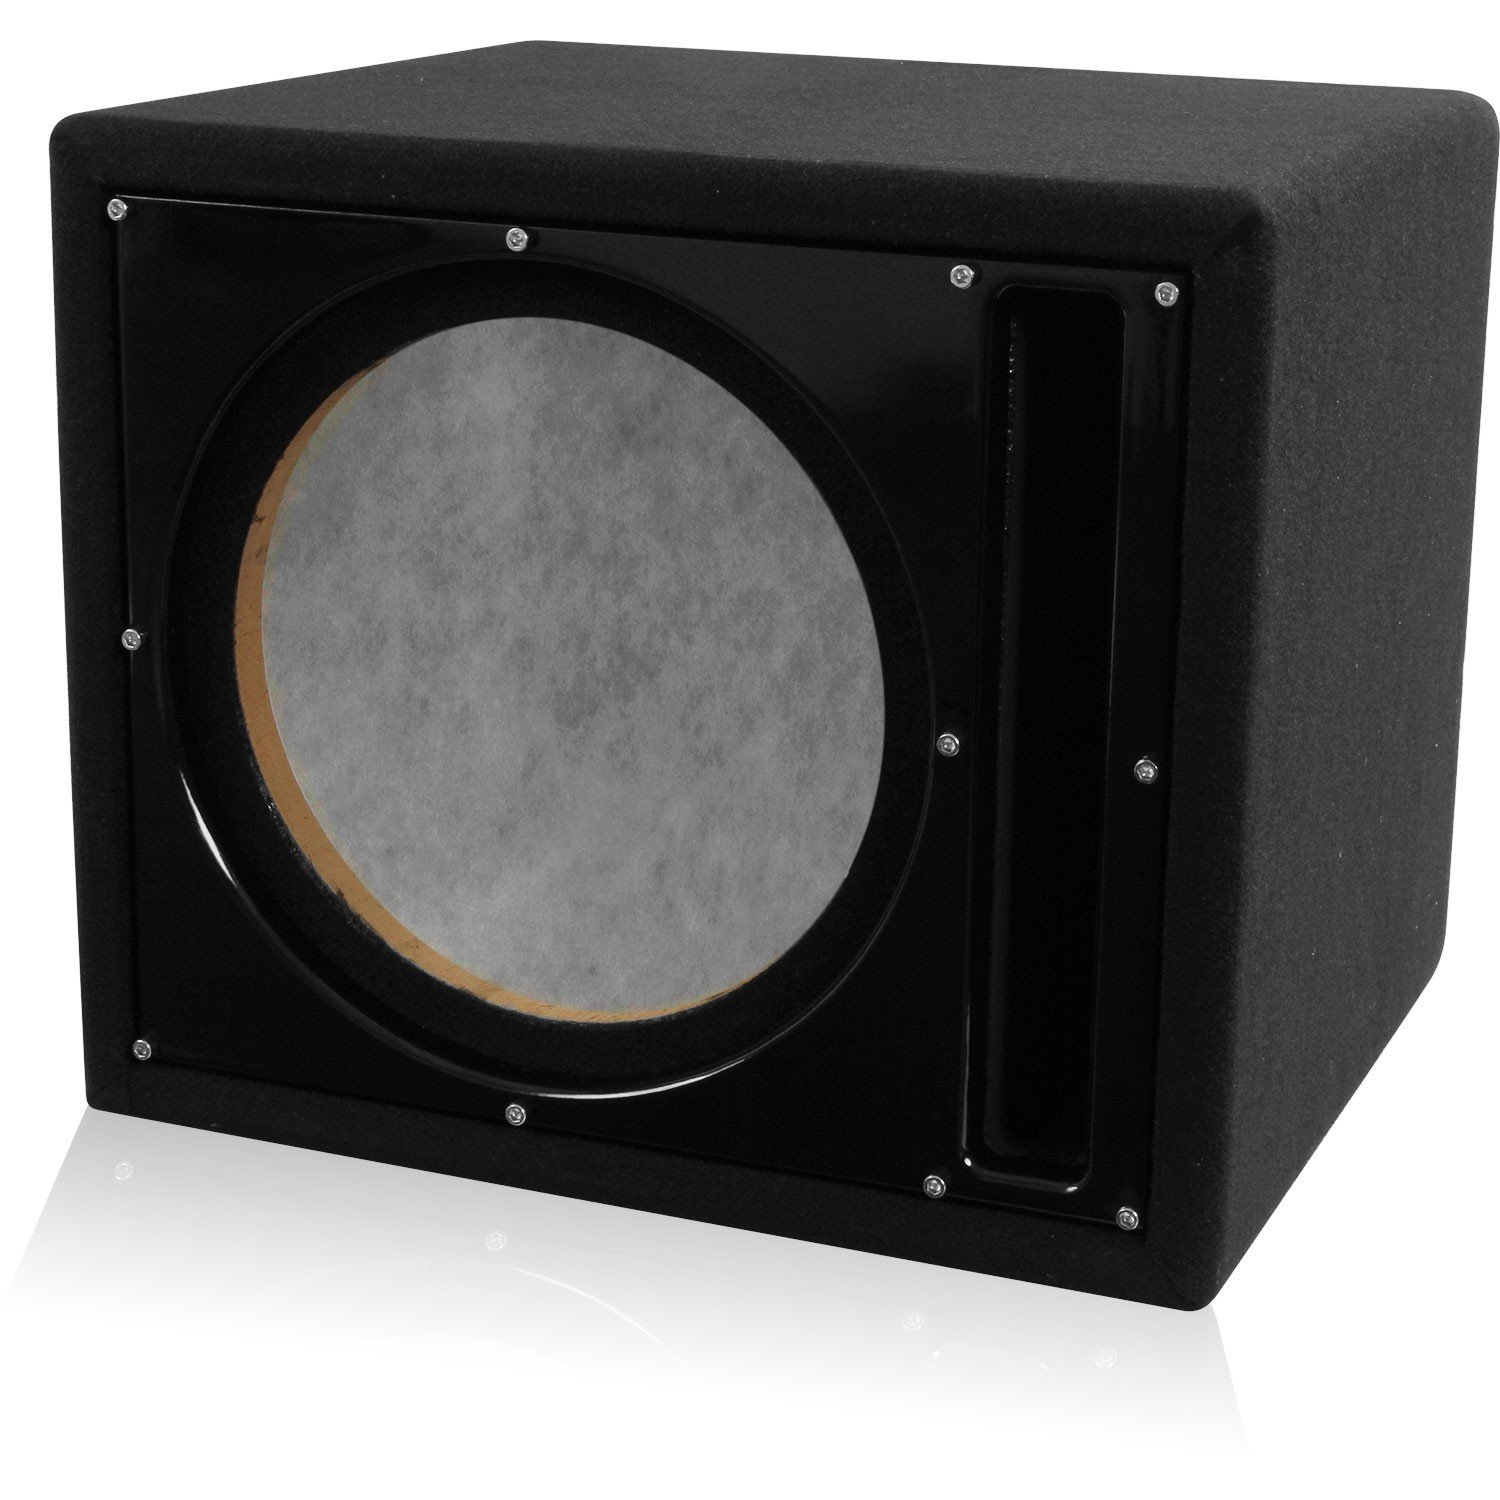 Cheap Subwoofer Box Sealed Or Ported, find Subwoofer Box Sealed Or